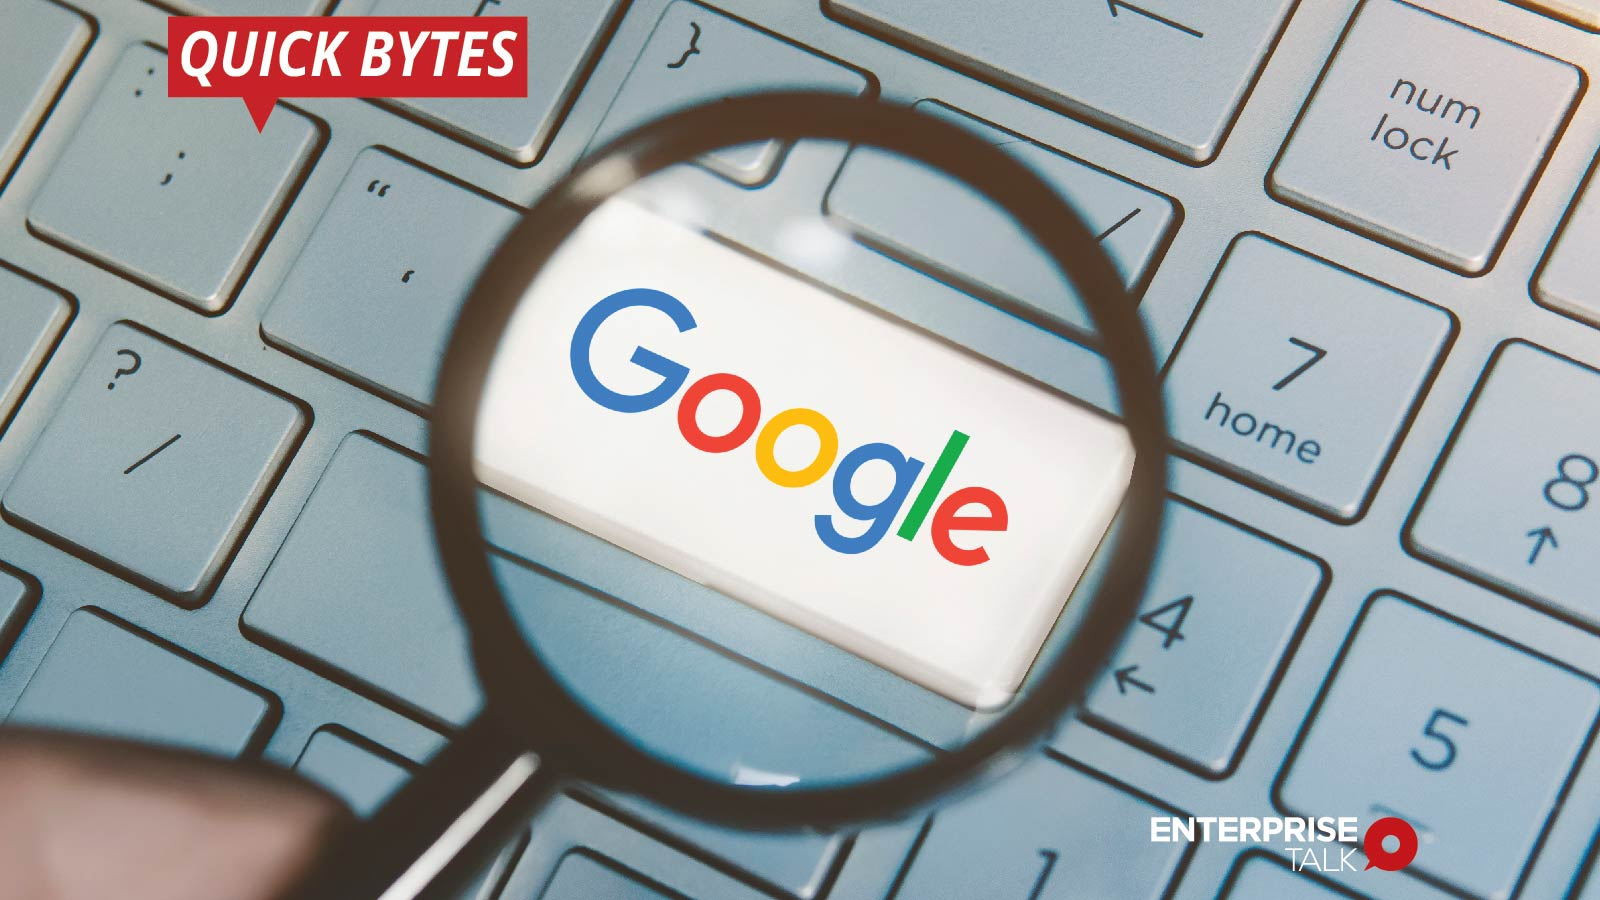 BeyondCorp Enterprise launched by Google